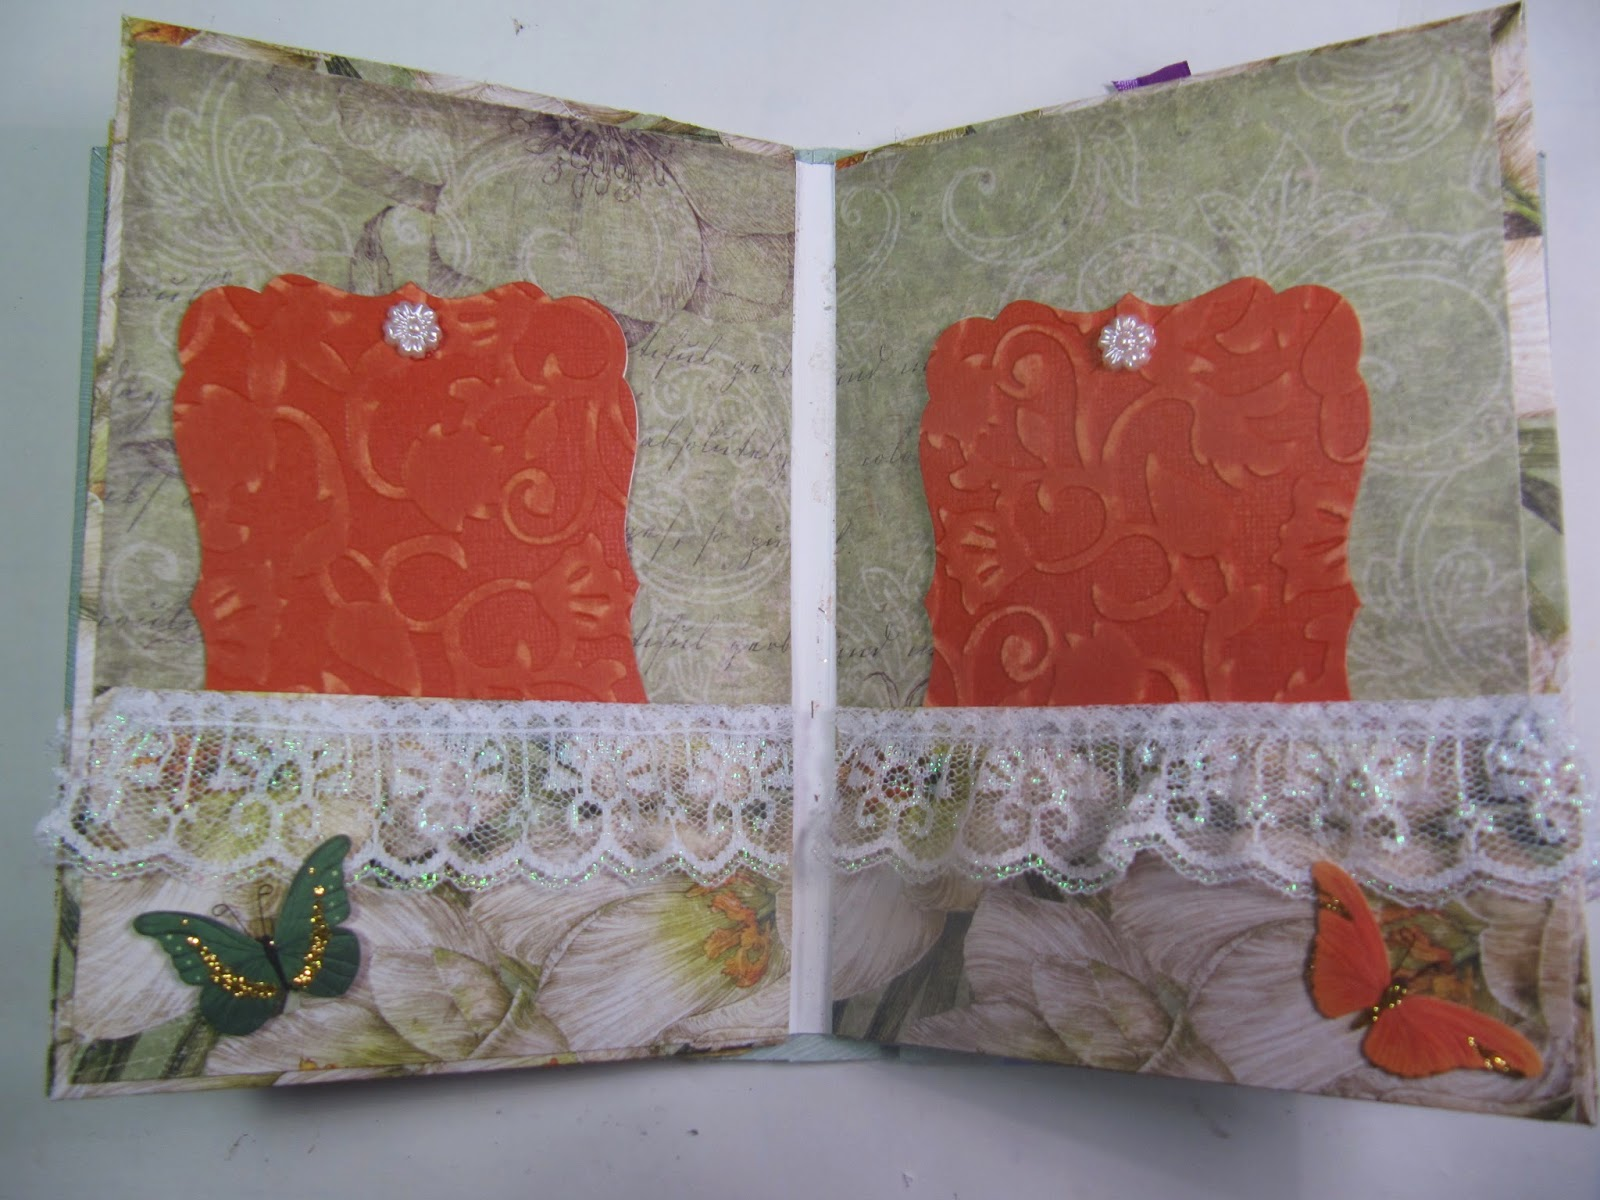 How to scrapbook a mini album - Here S A Scrapbook Mini Album I Made Using Chipboard Distress Ink Embossing Folders Lace The List Goes On The Details Are All Talked About In The